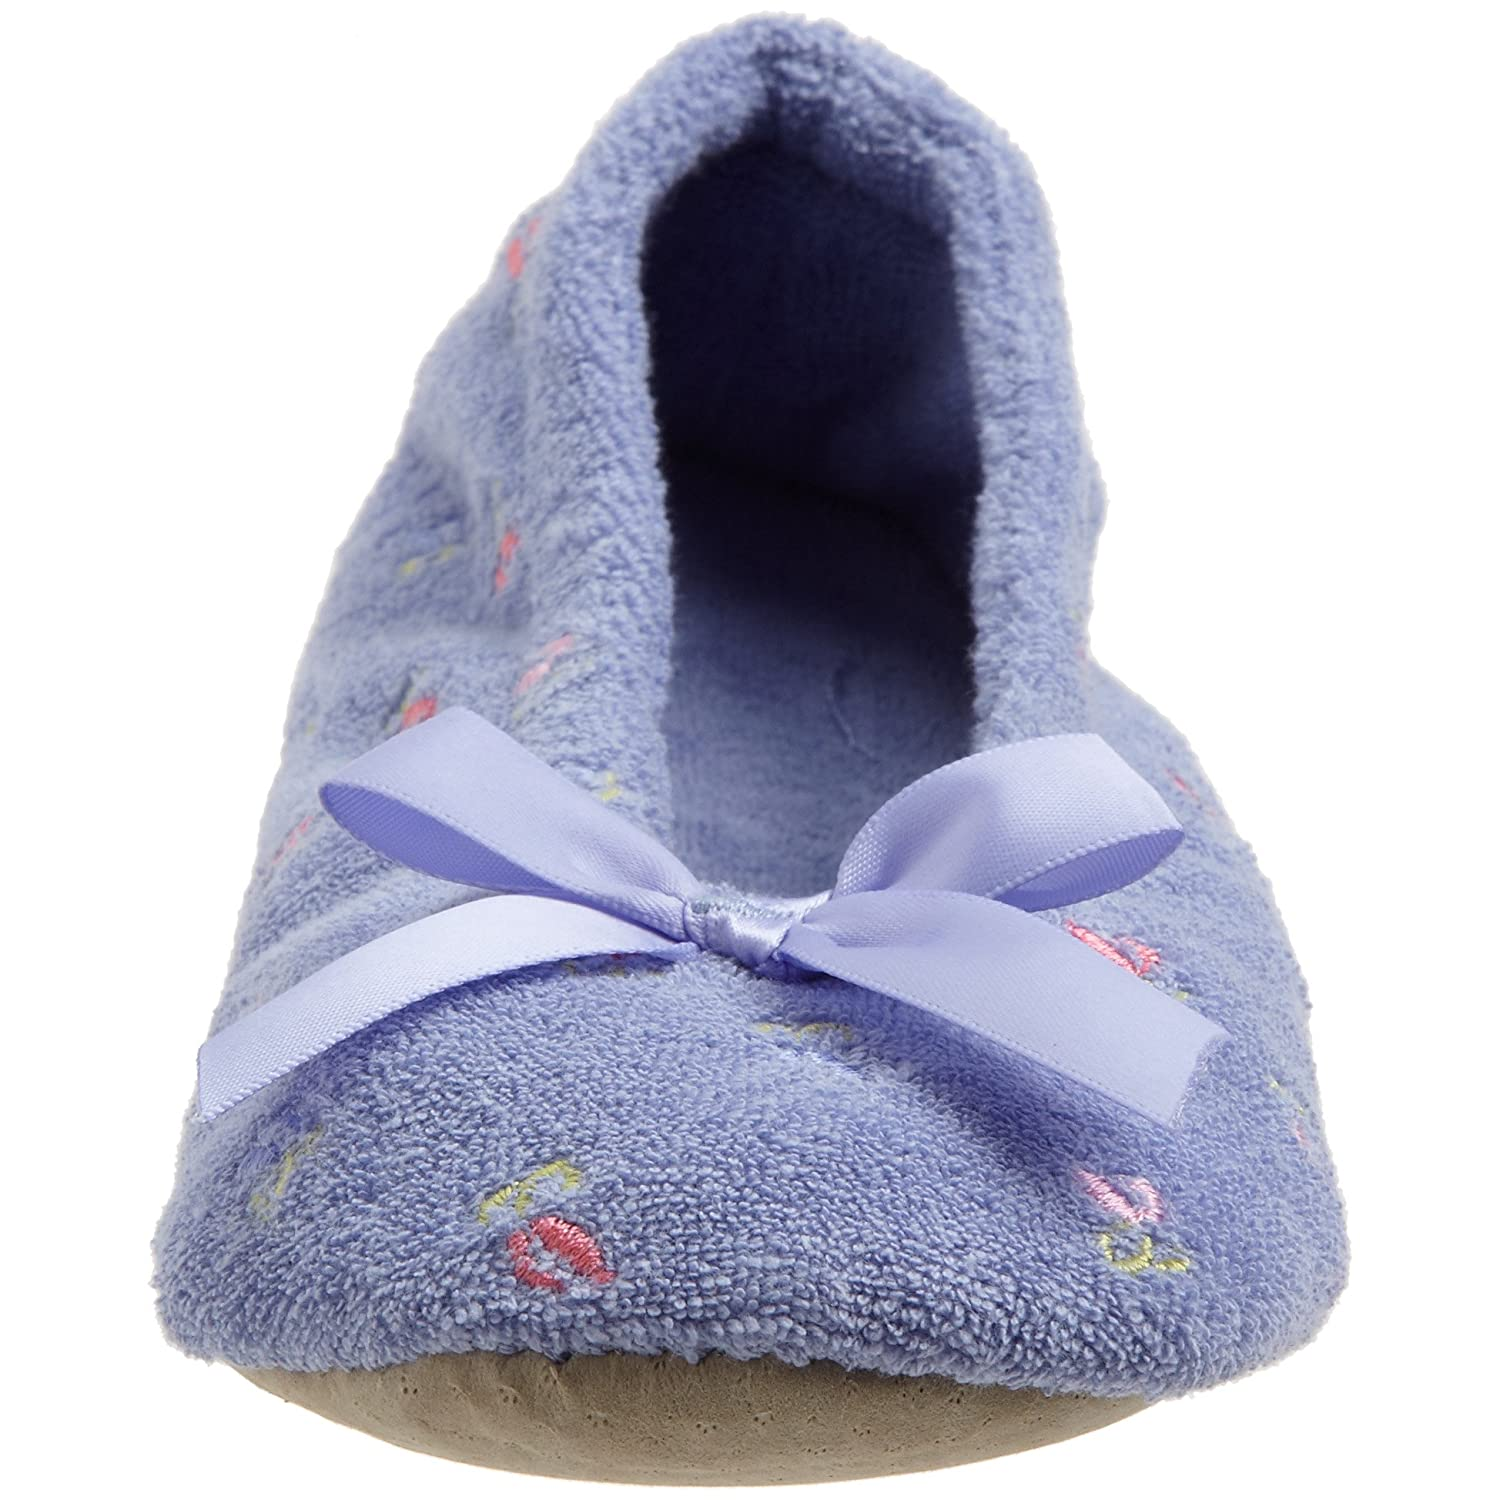 Isotoner Womens Embroidered Ballerina